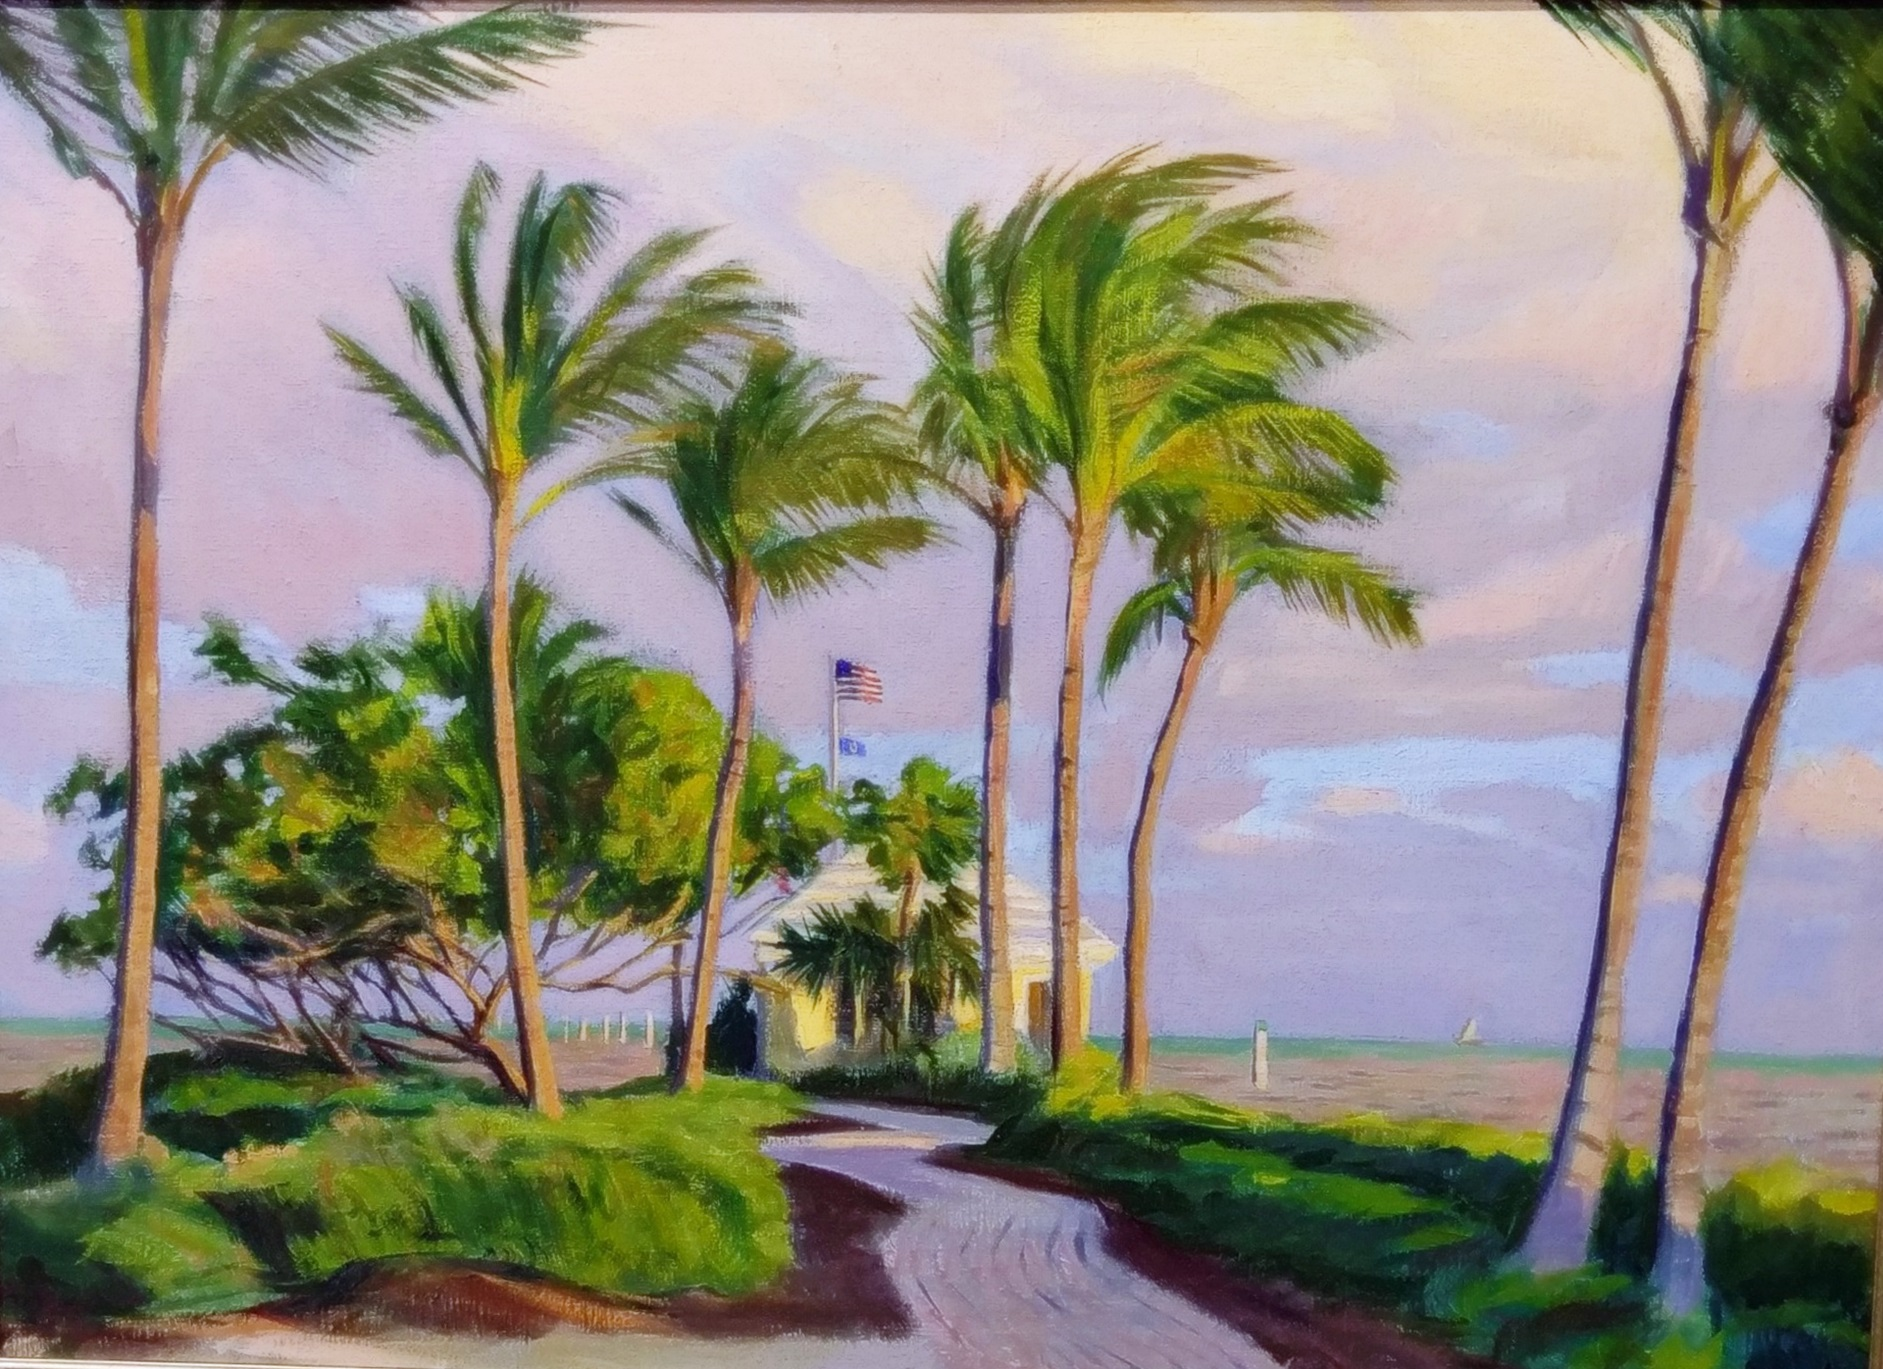 S Wood - Point Breeze, oil 28x34, fr